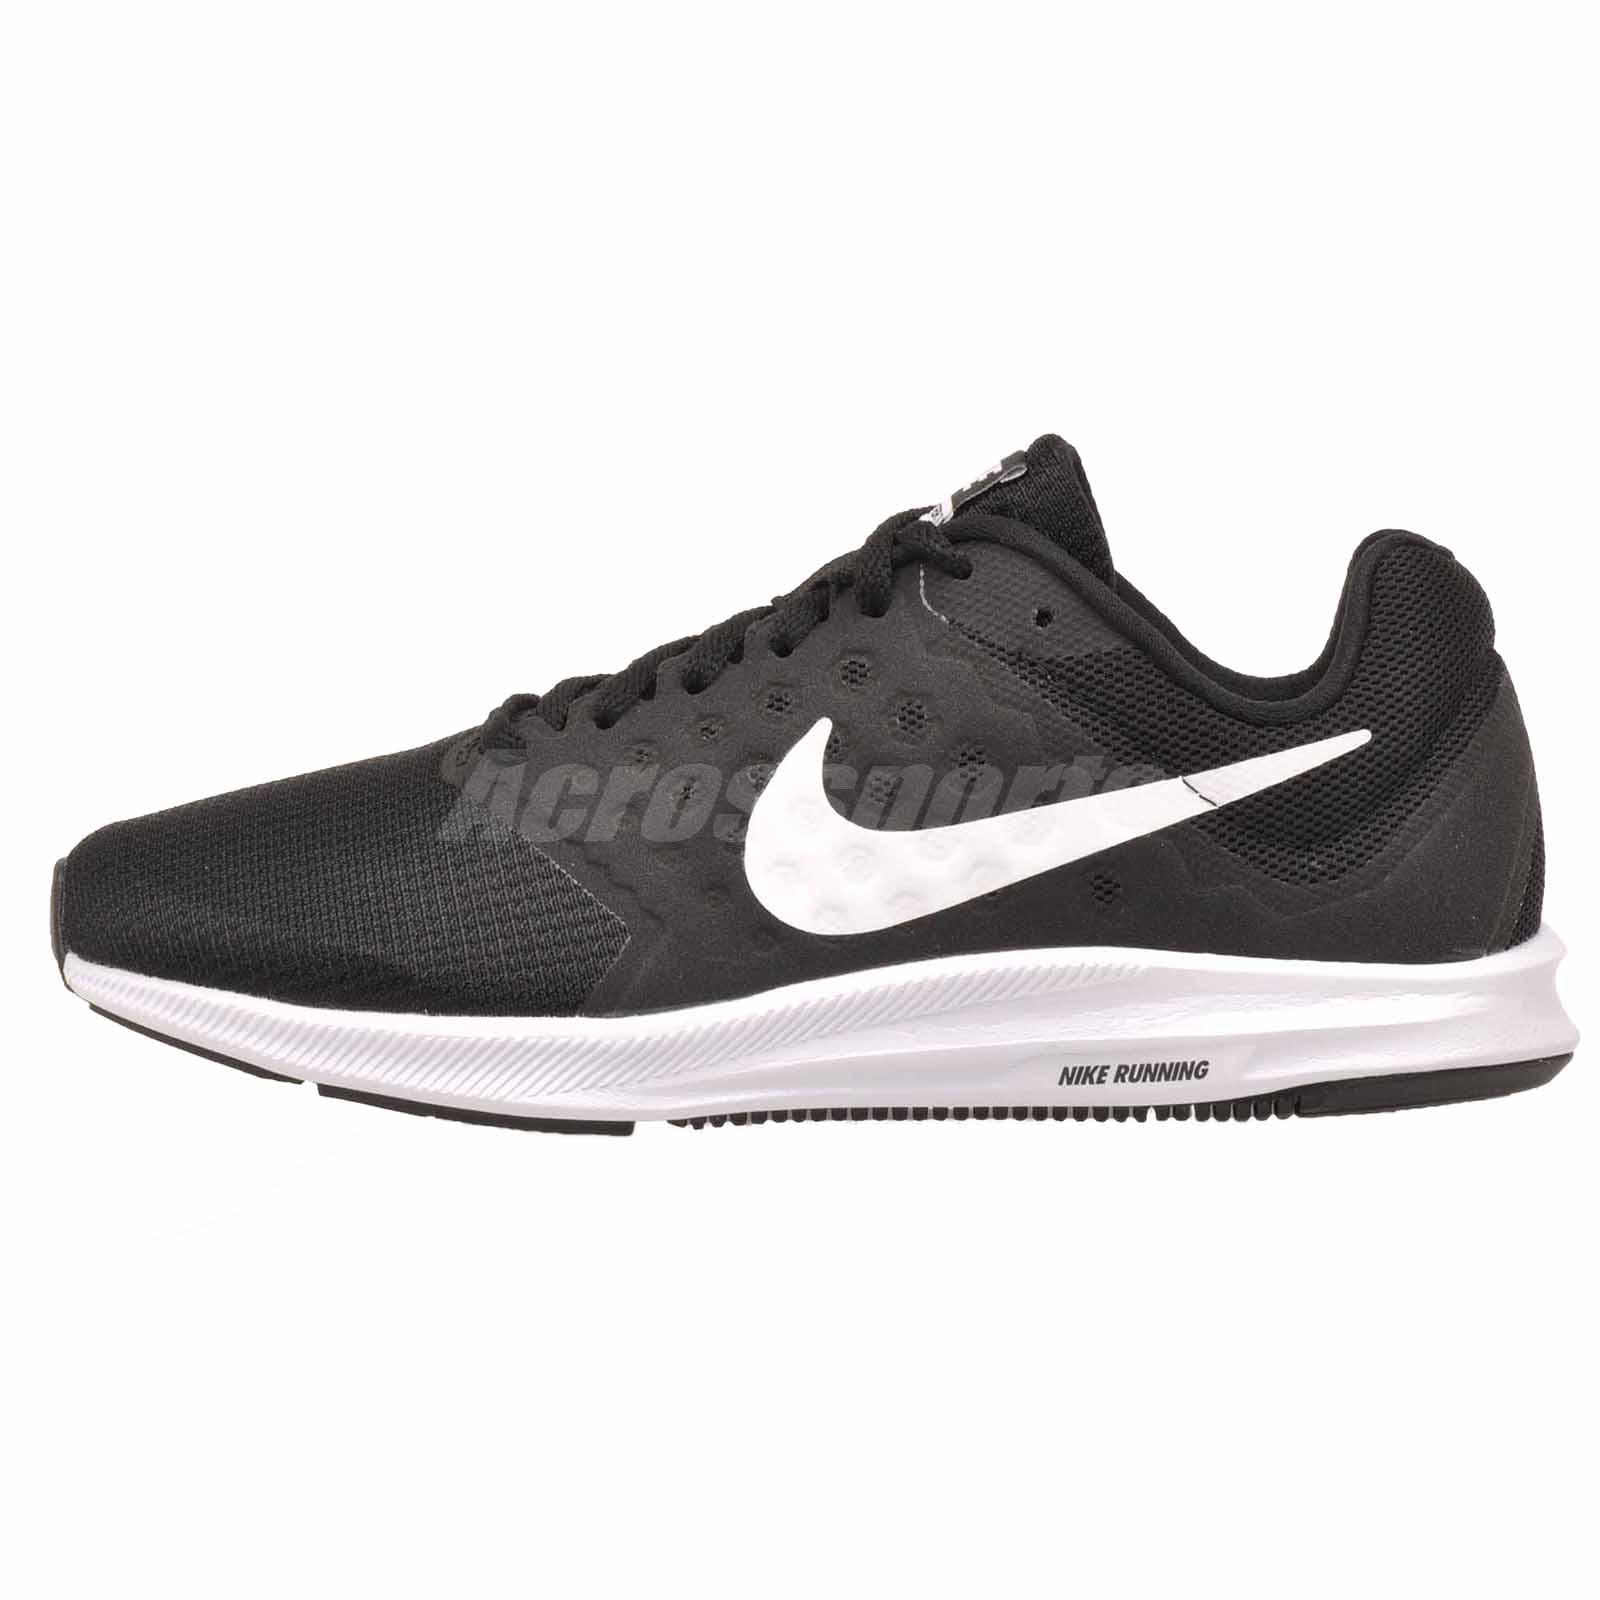 belleza envio GRATIS a todo el mundo predominante Nike Wmns Downshifter 7 Womens Running Shoes Black/White - Wide ...